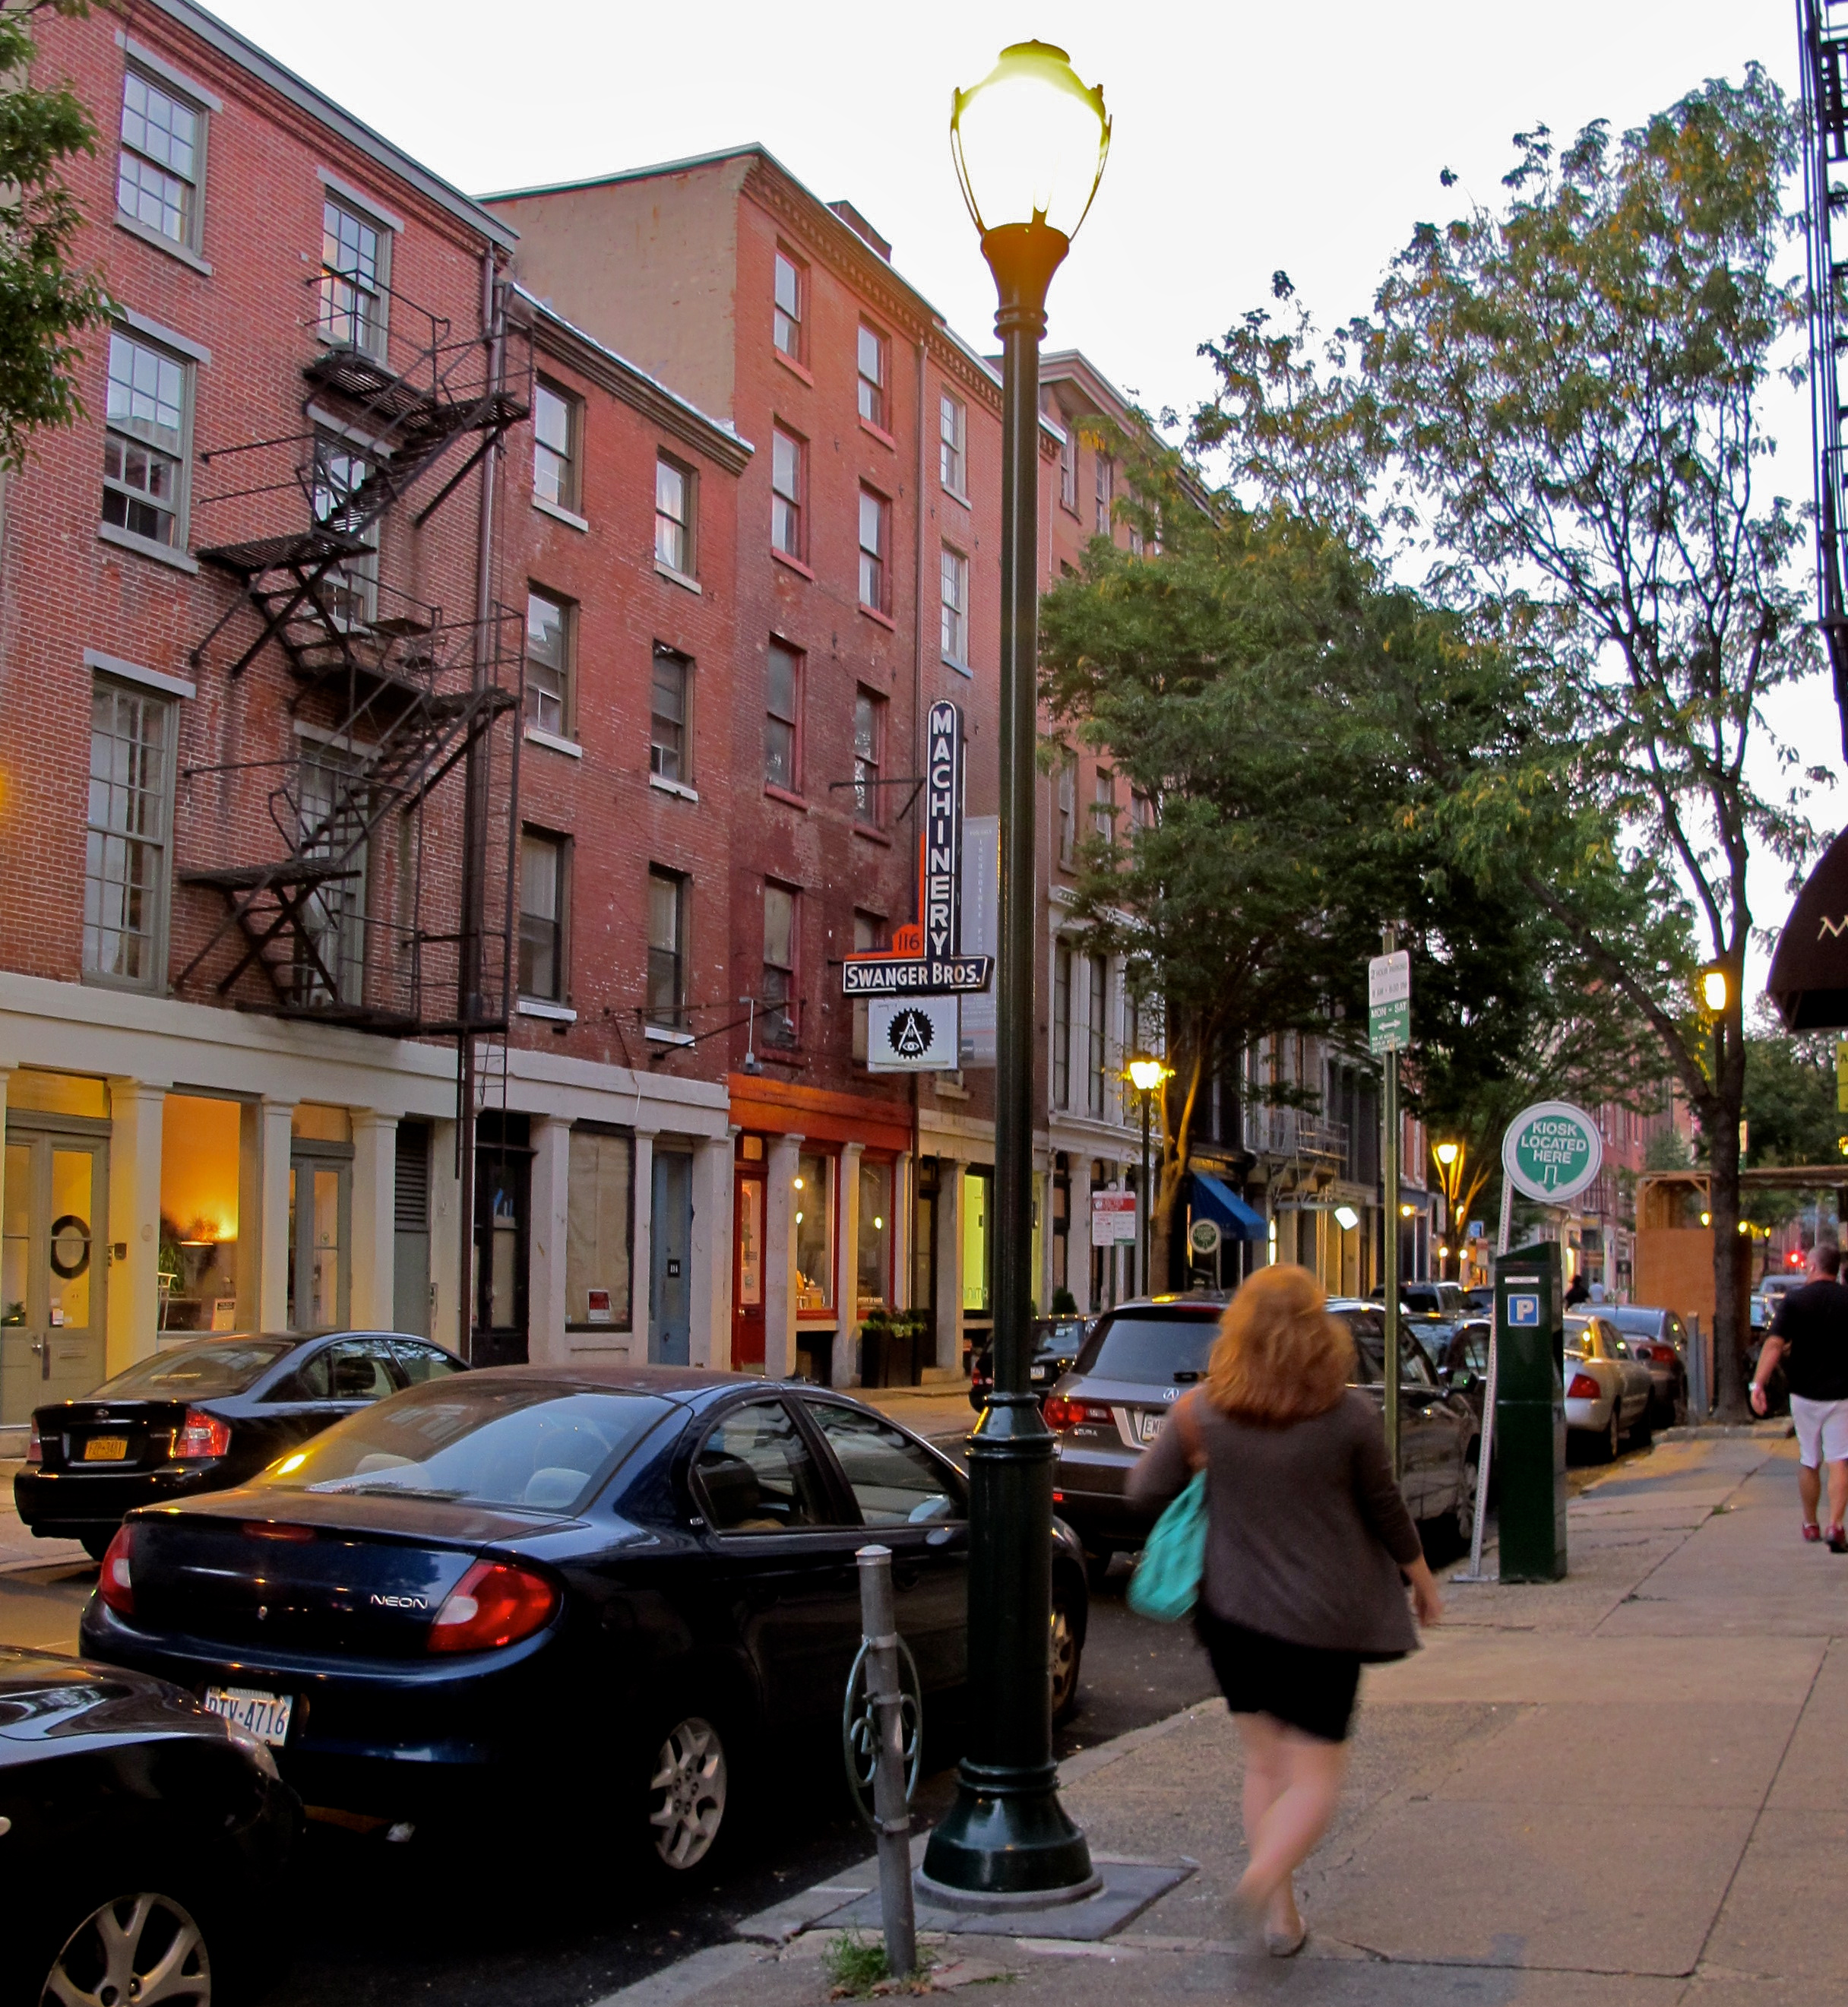 33 new pedestrian-scale street lights were recently installed along North 3rd Street in Old City.